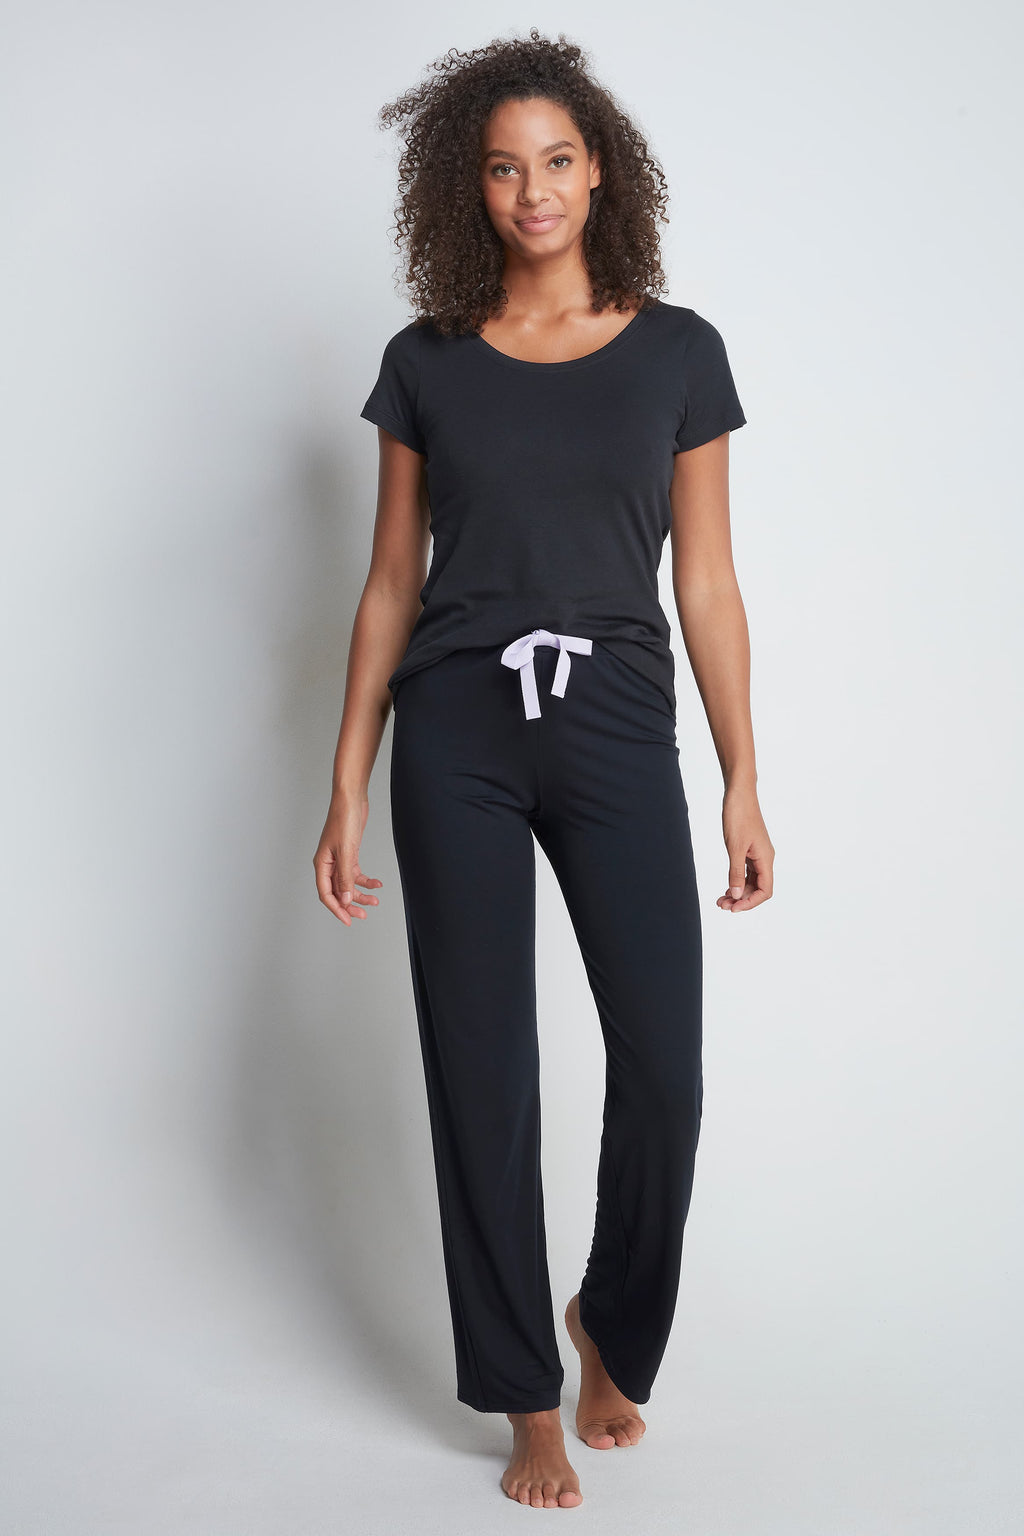 High Quality Black Lounge Trousers - Cozy Lounge Trousers - Soft and Comfortable Lounge Trousers - Warm Black Lounge Trousers